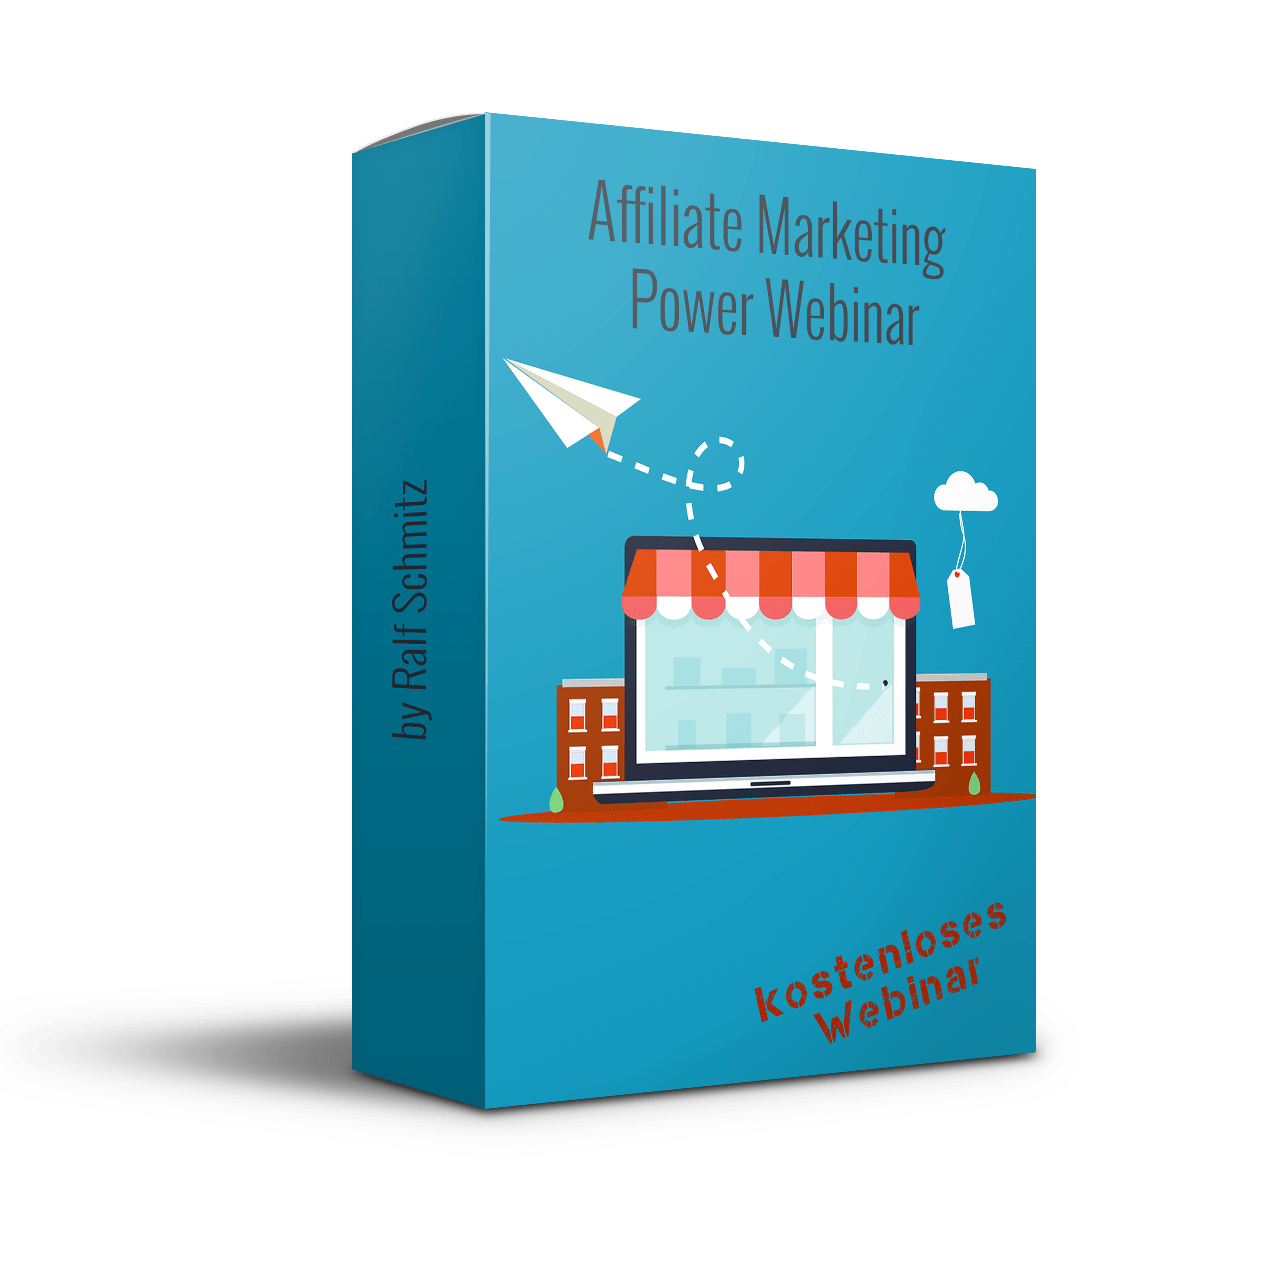 Affiliate Marketing Power Webinar von Ralf Schmitz